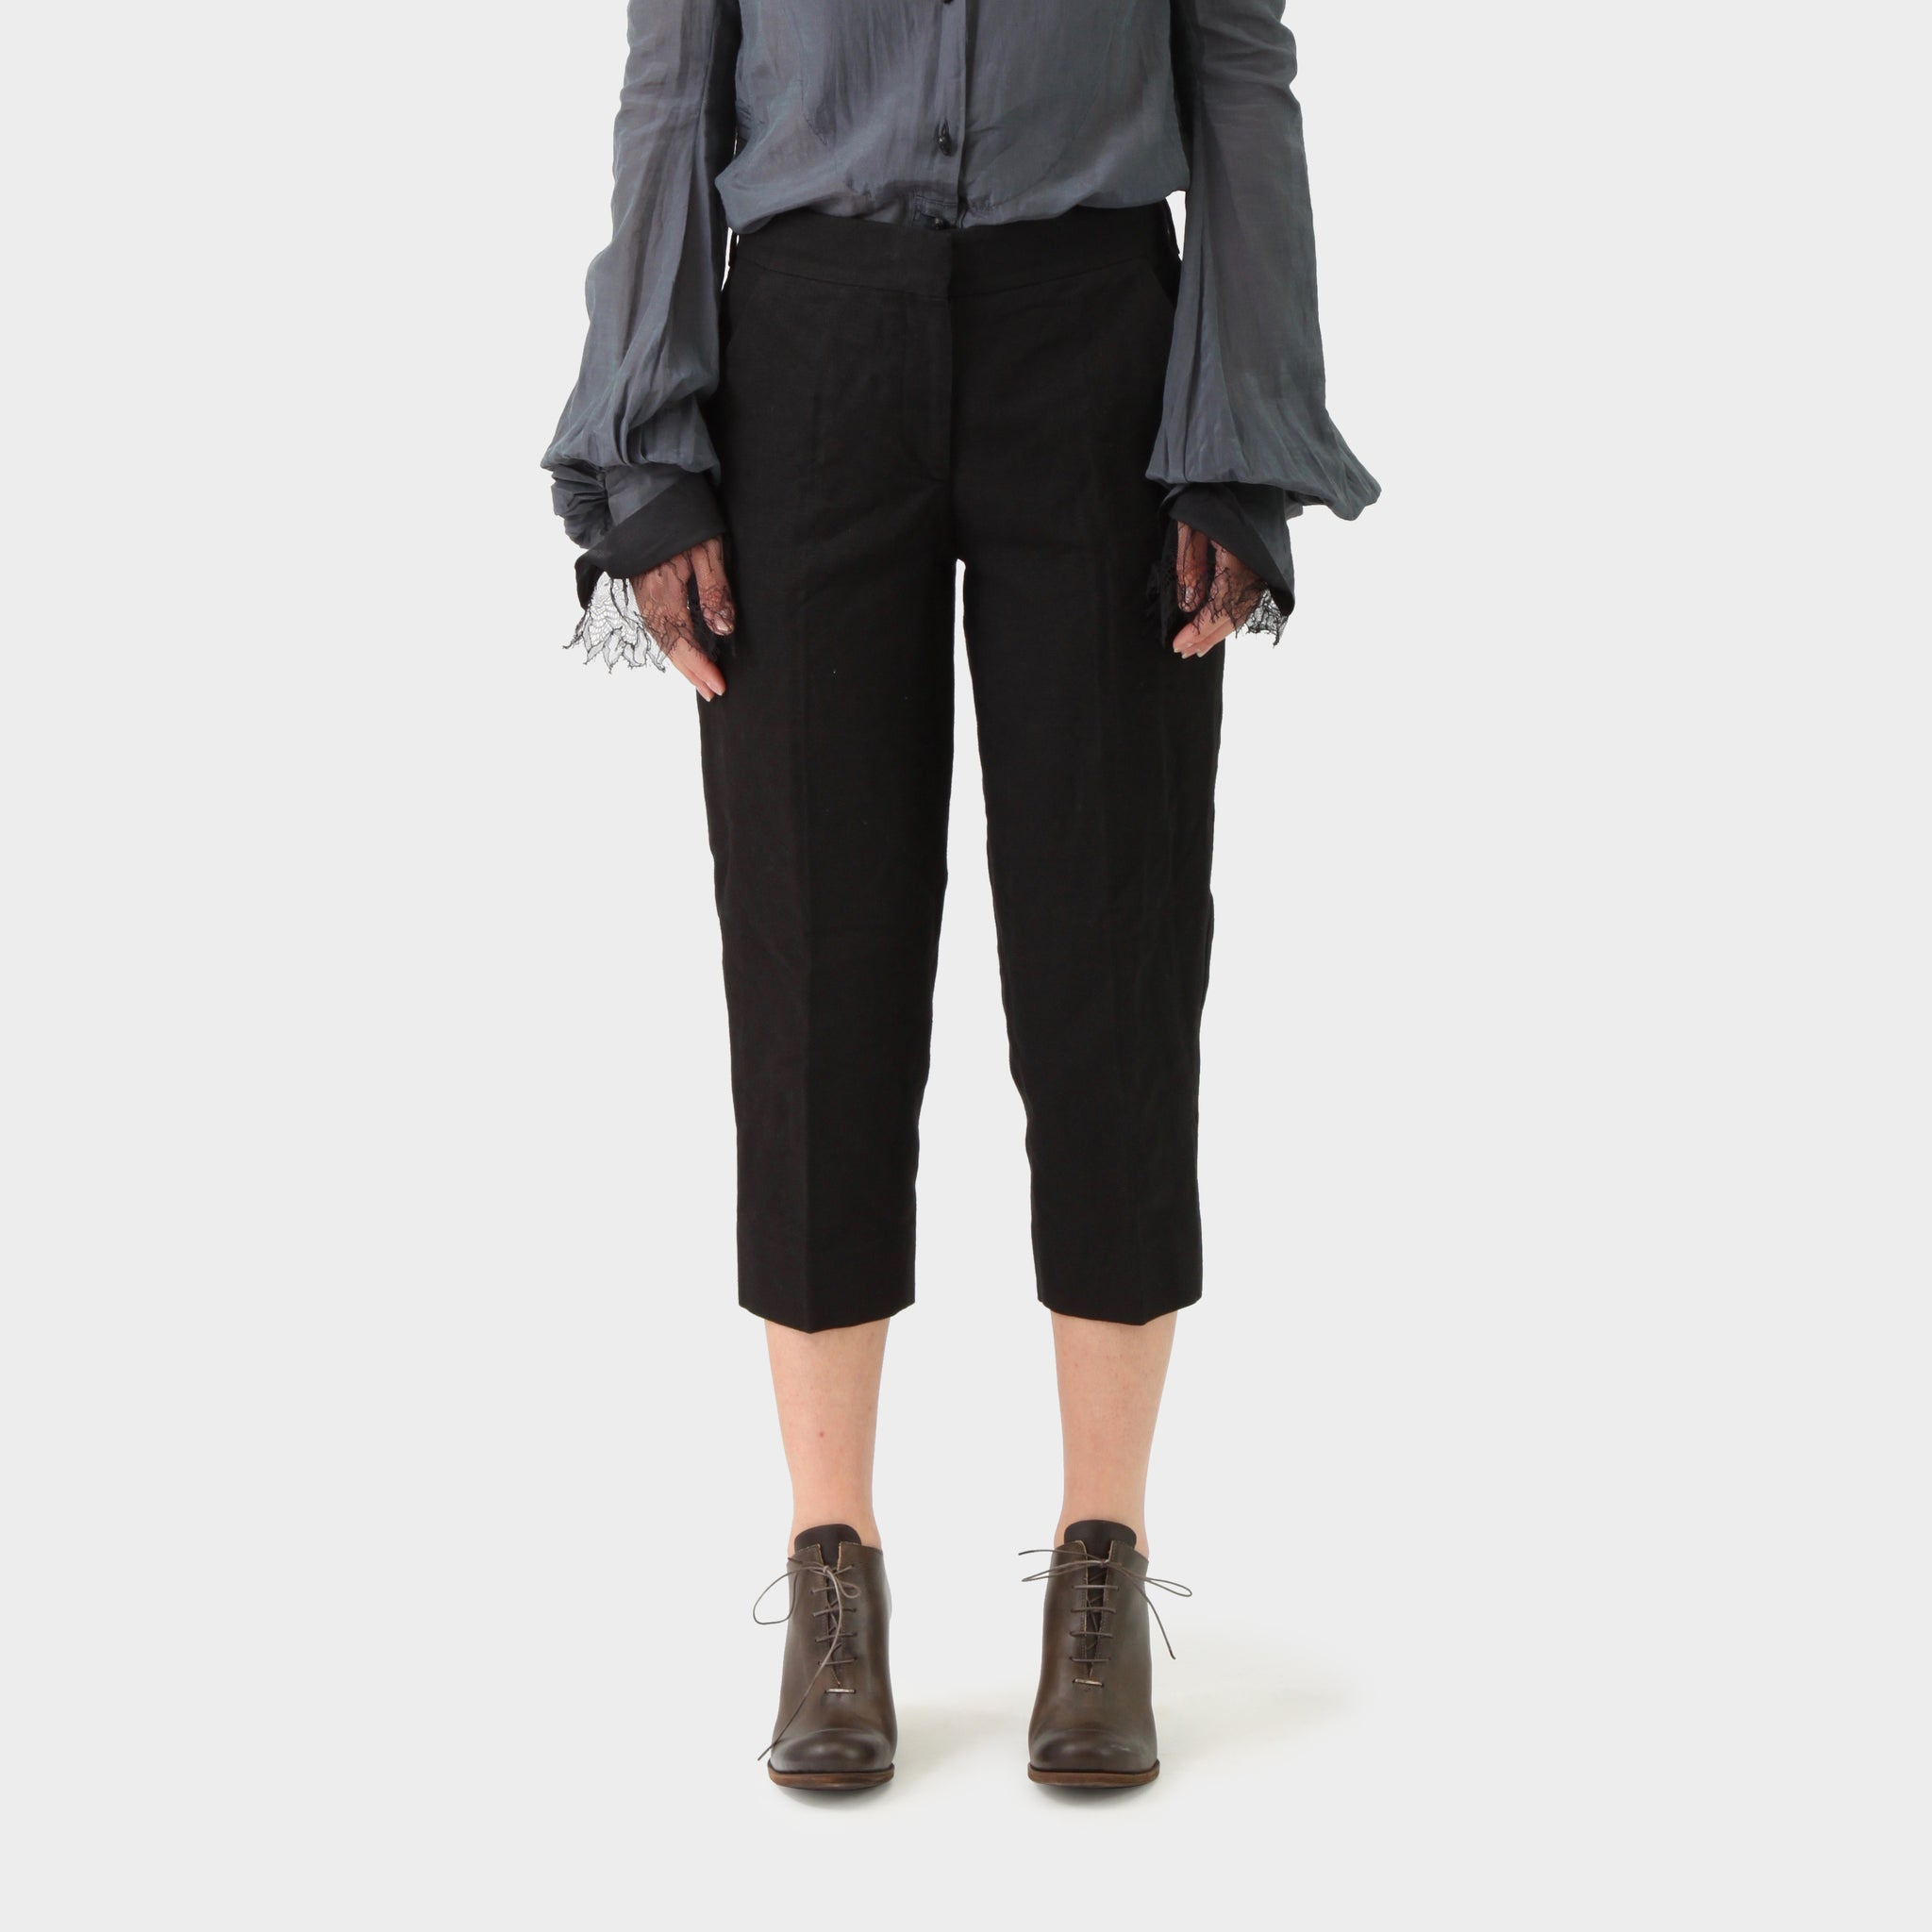 Prada Canvas Cropped Pant